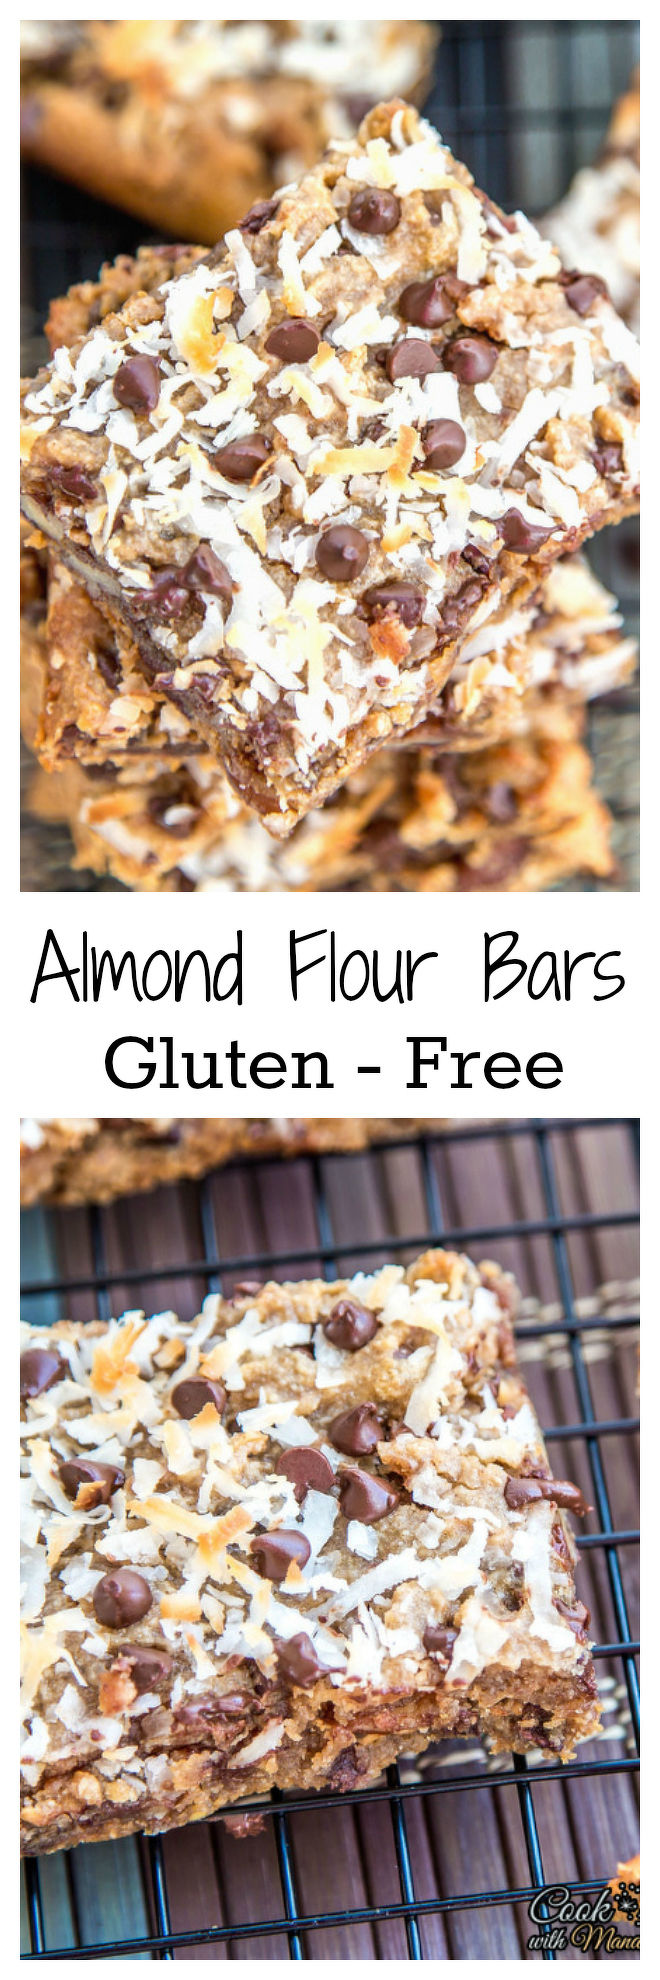 Almond-Flour-Gluten-Free-Bars Collage-nocwm